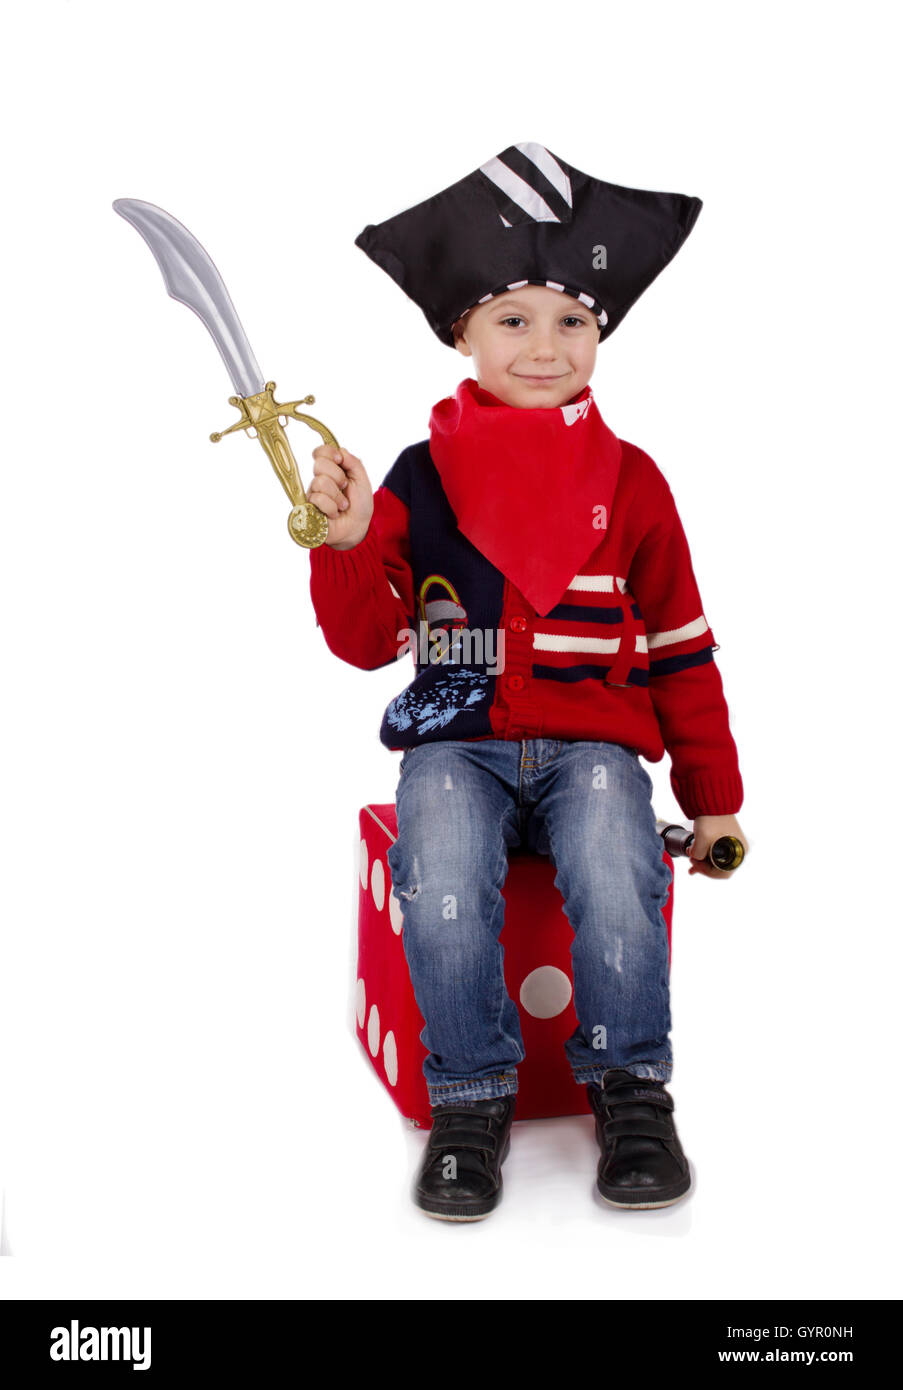 Small boy dressed like pirate holding toy sword Stock Photo